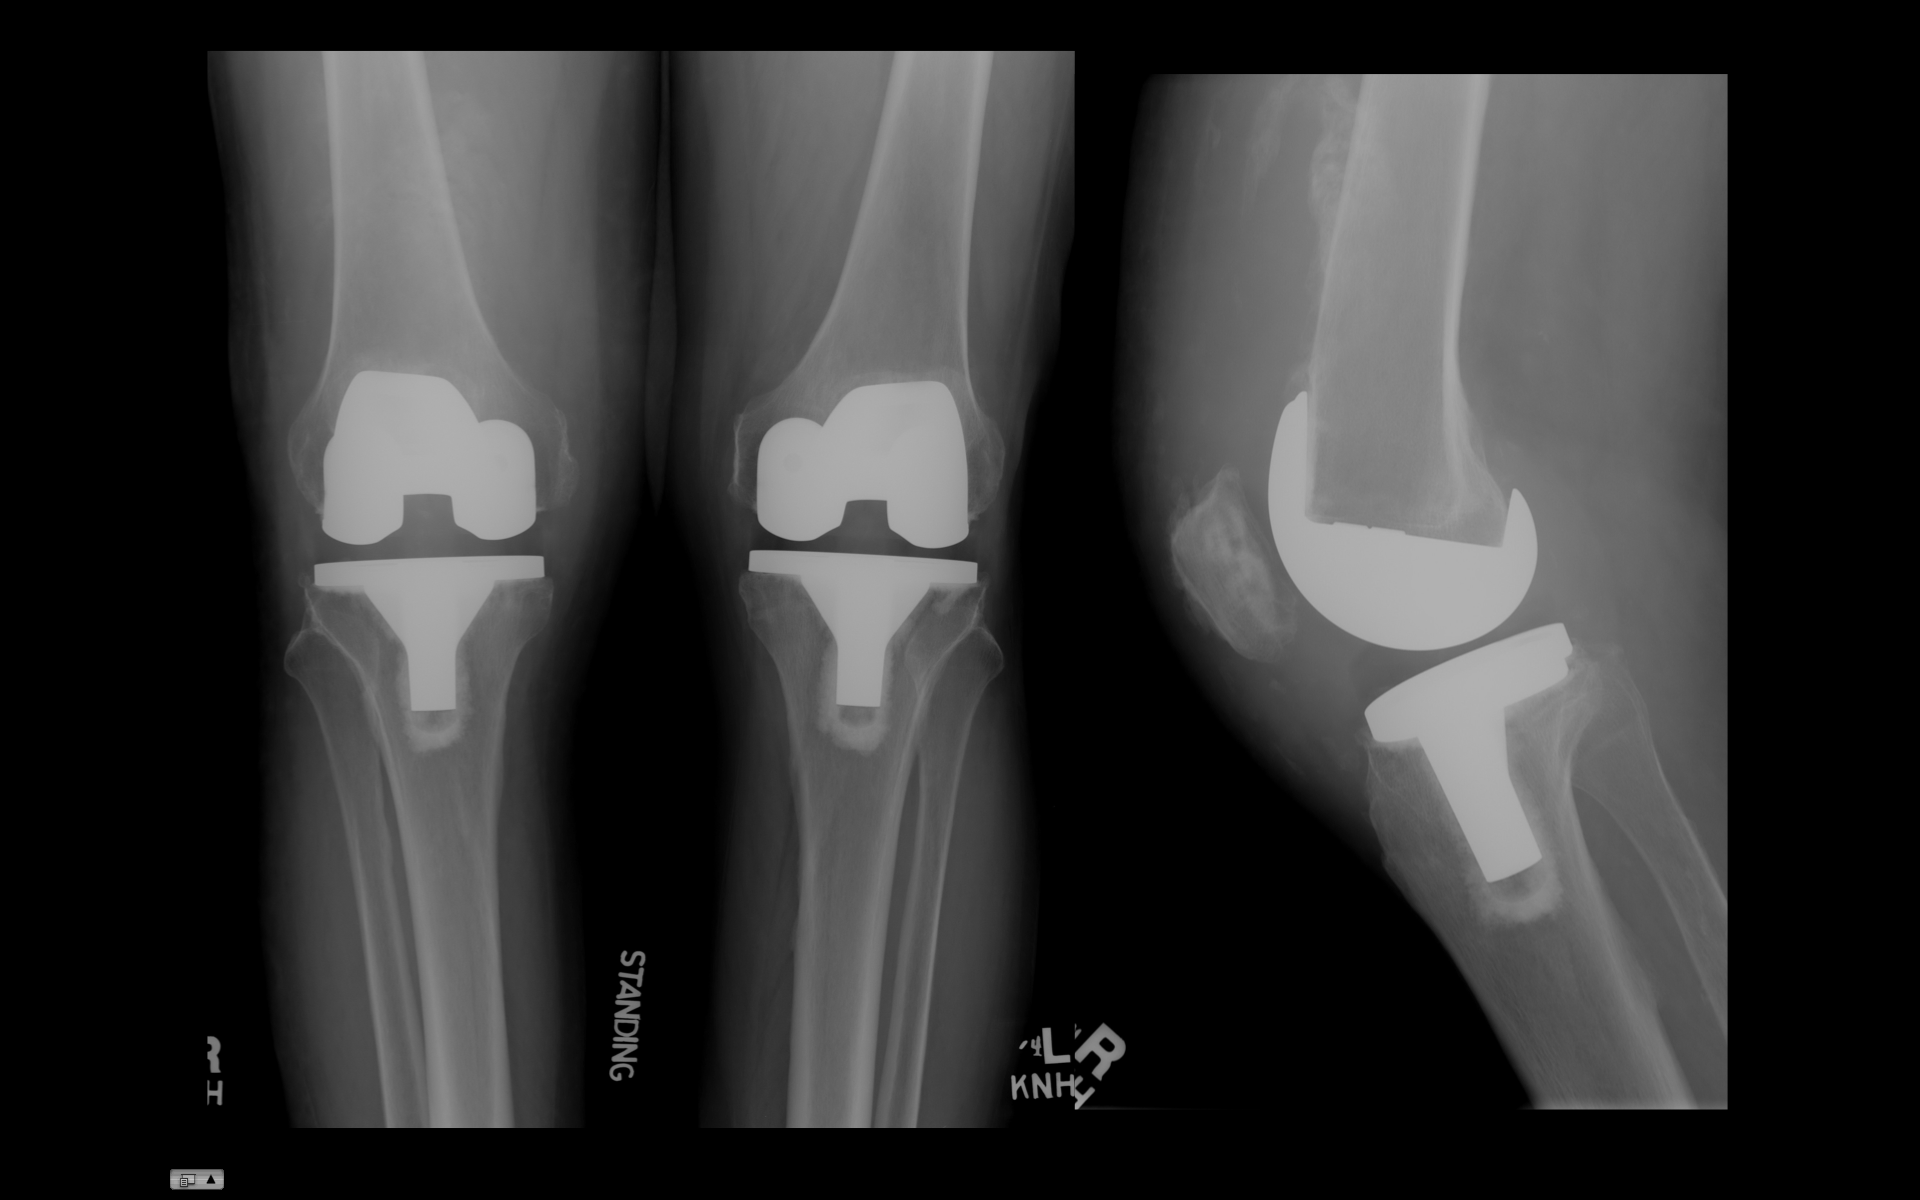 knee arthroplasty After a total knee replacement, patients can get back to their activities fast by following a specialized total knee replacement rehab protocol visit the robotic joint center at the stone clinic.